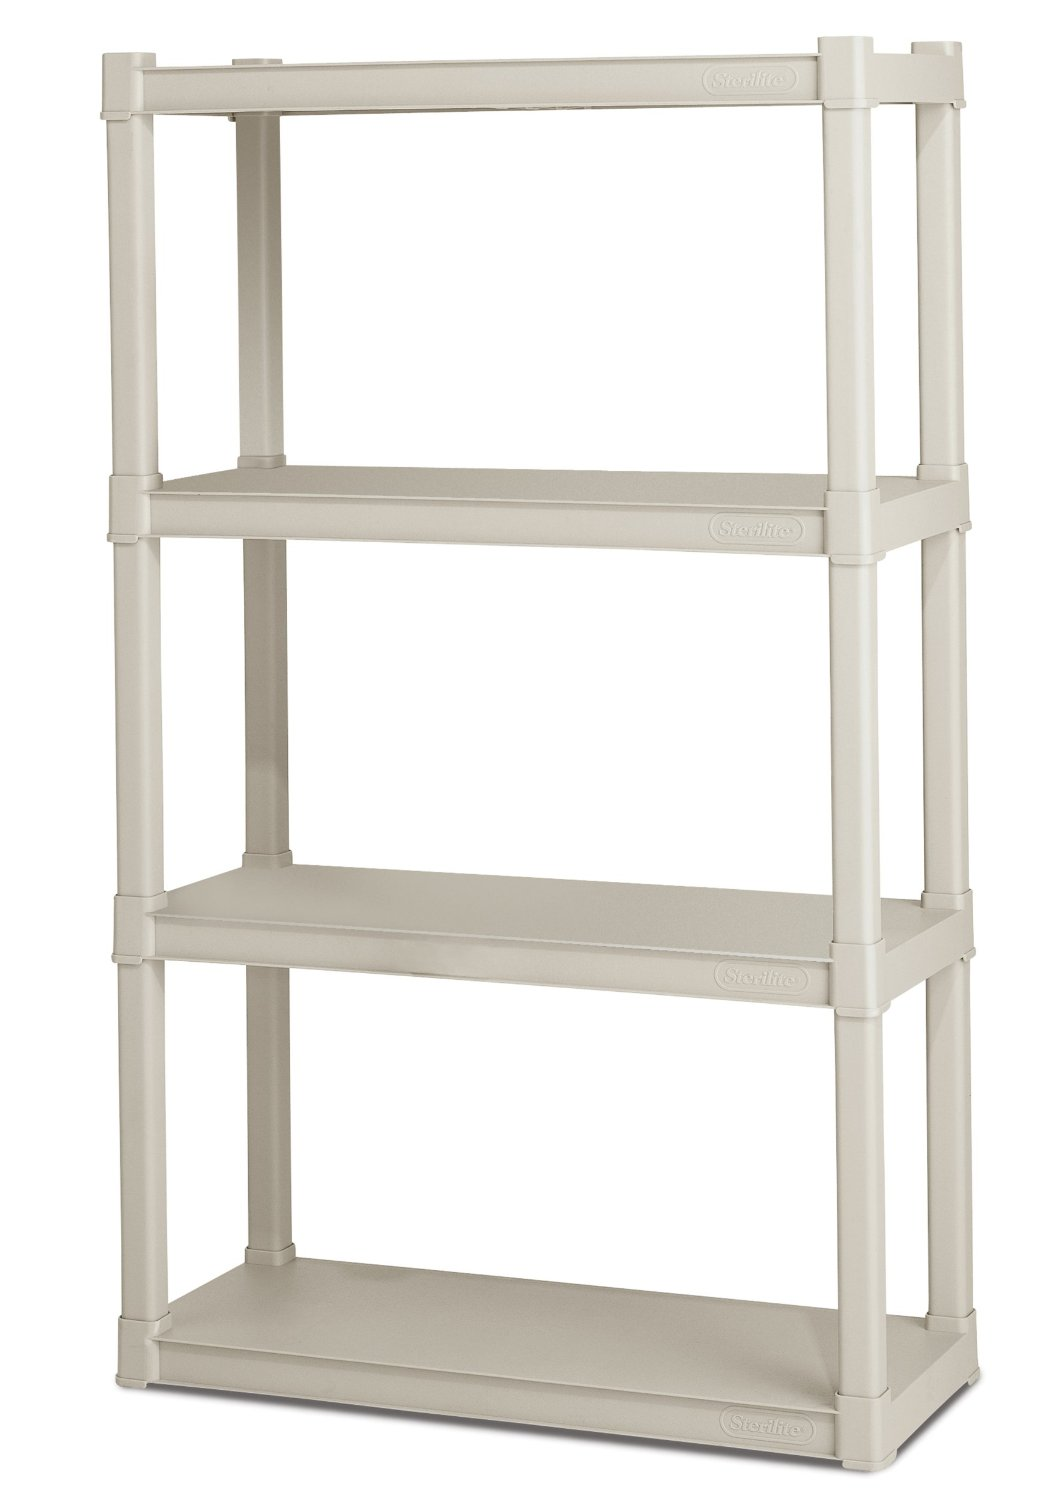 Sterilite 4 Shelf Shelving Unit Only 29 00 Great For